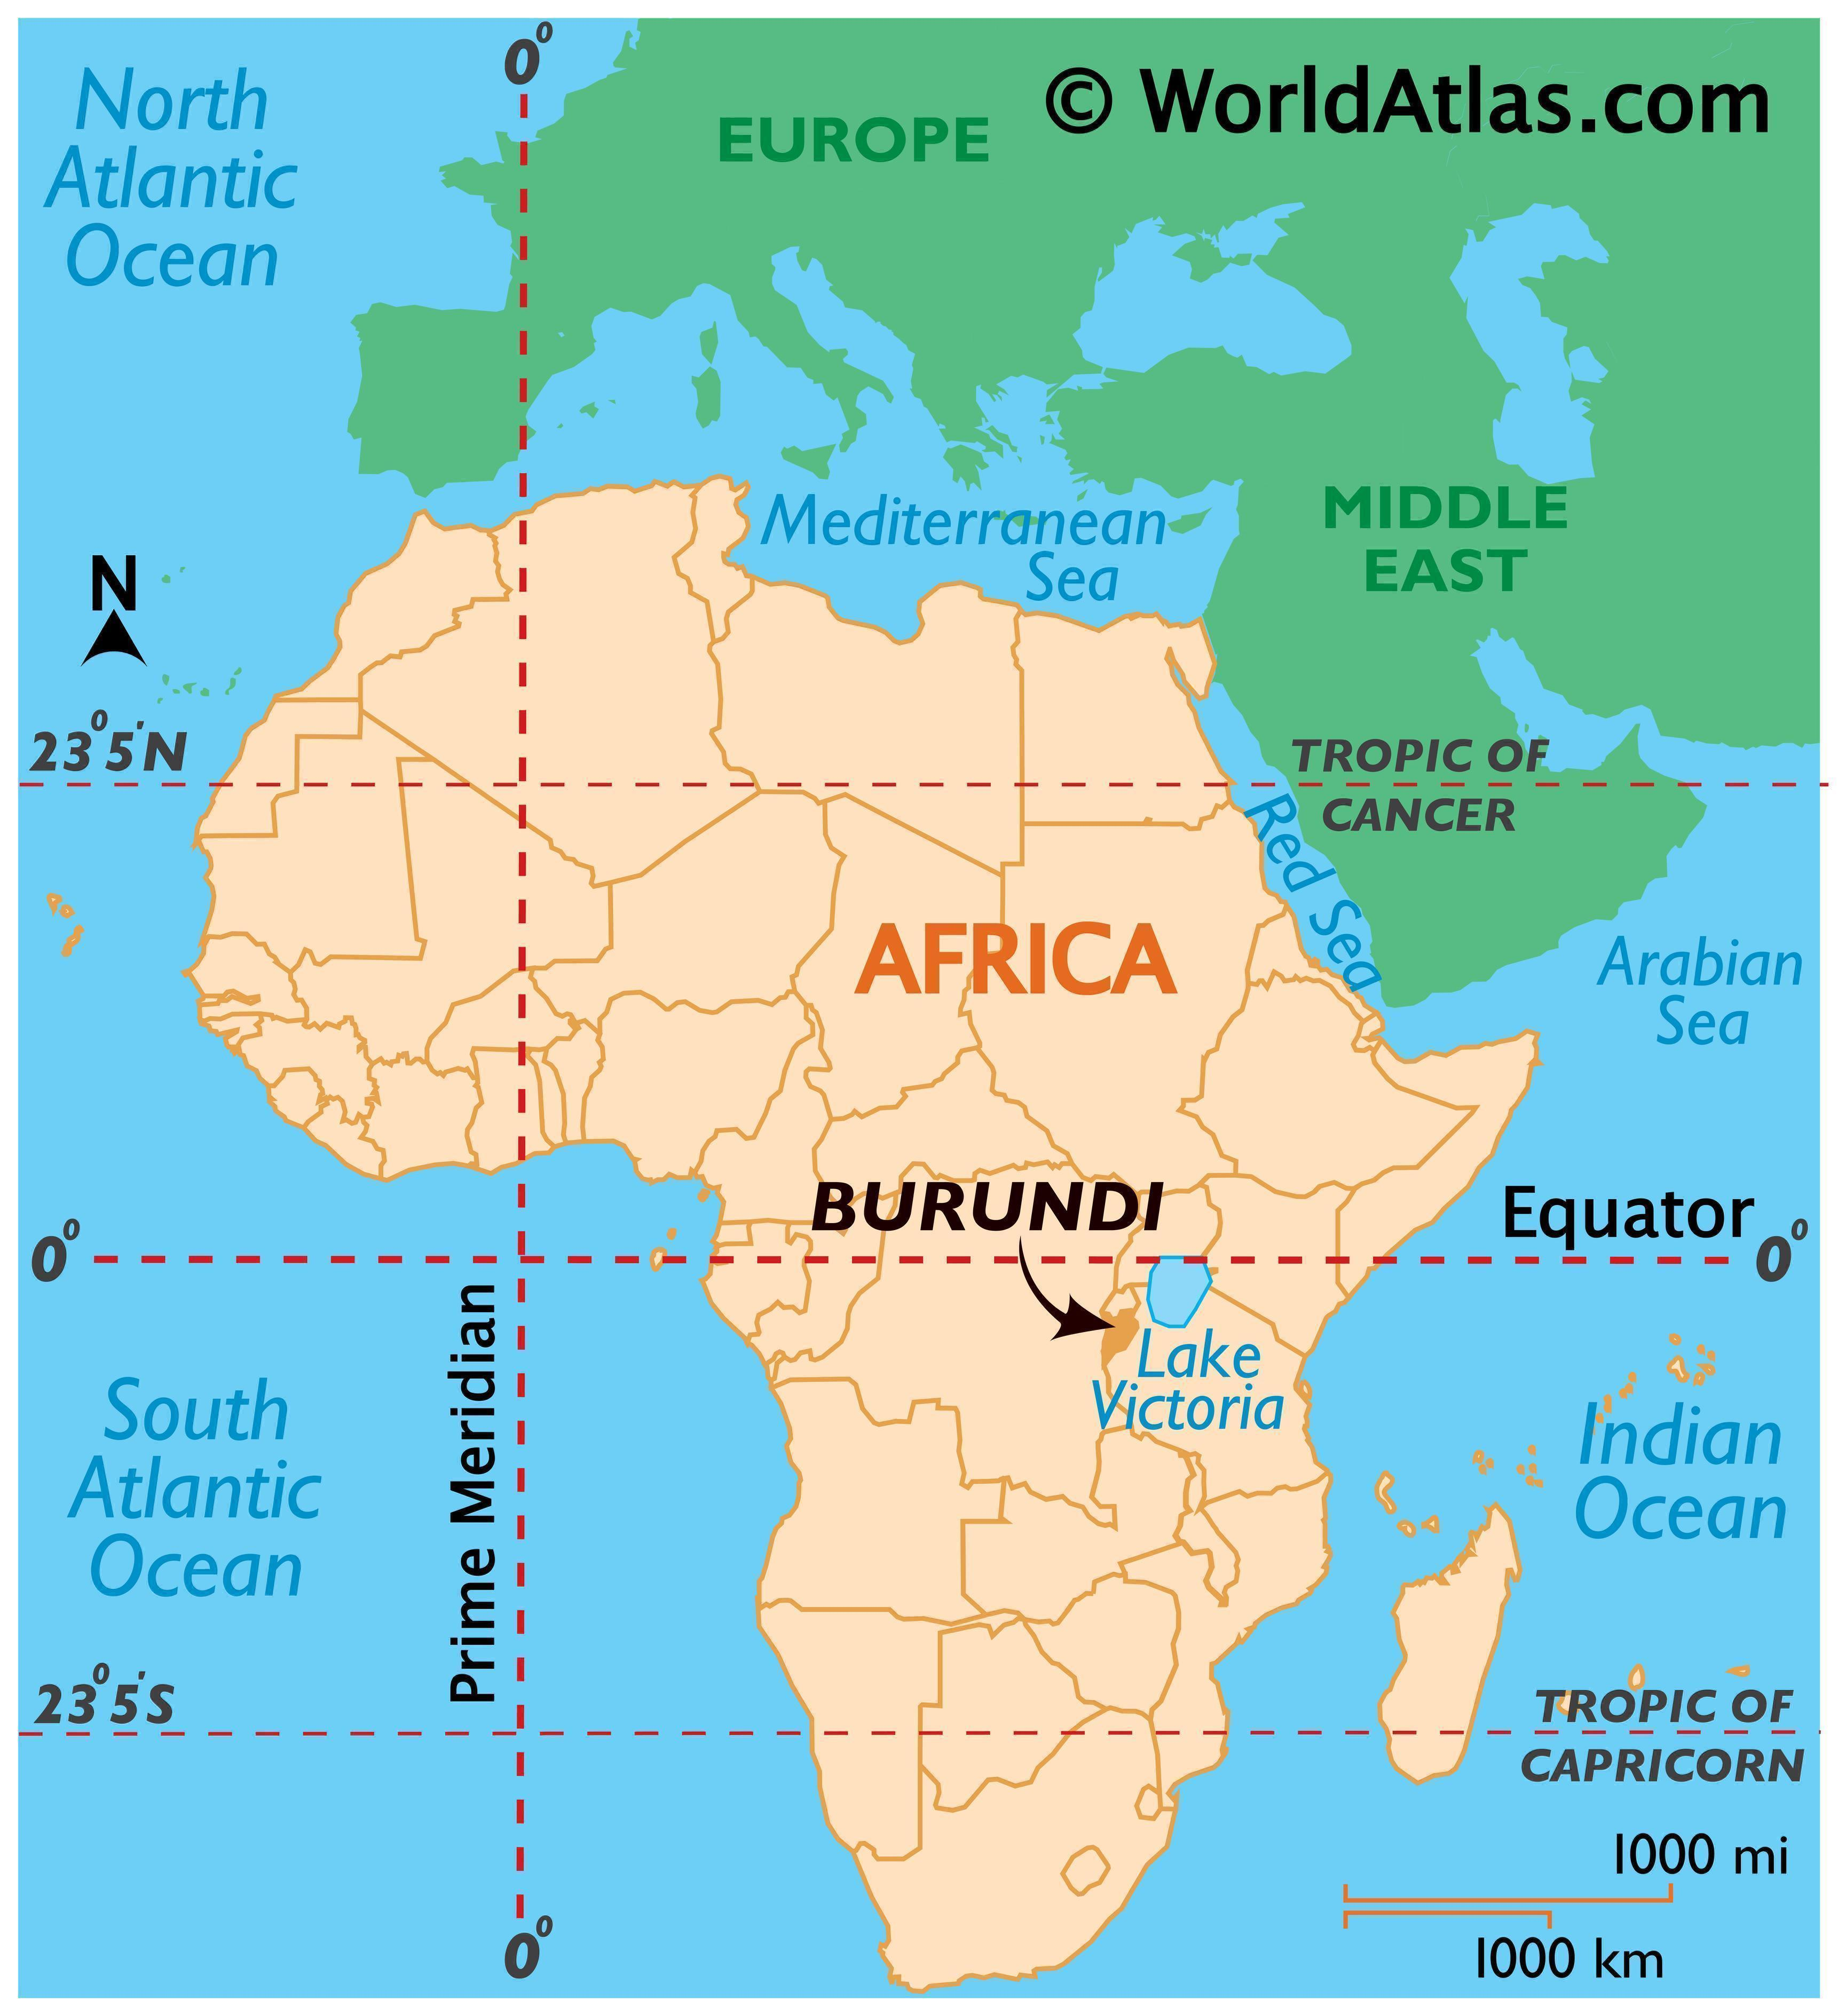 Map showing location of Burundi in the world.